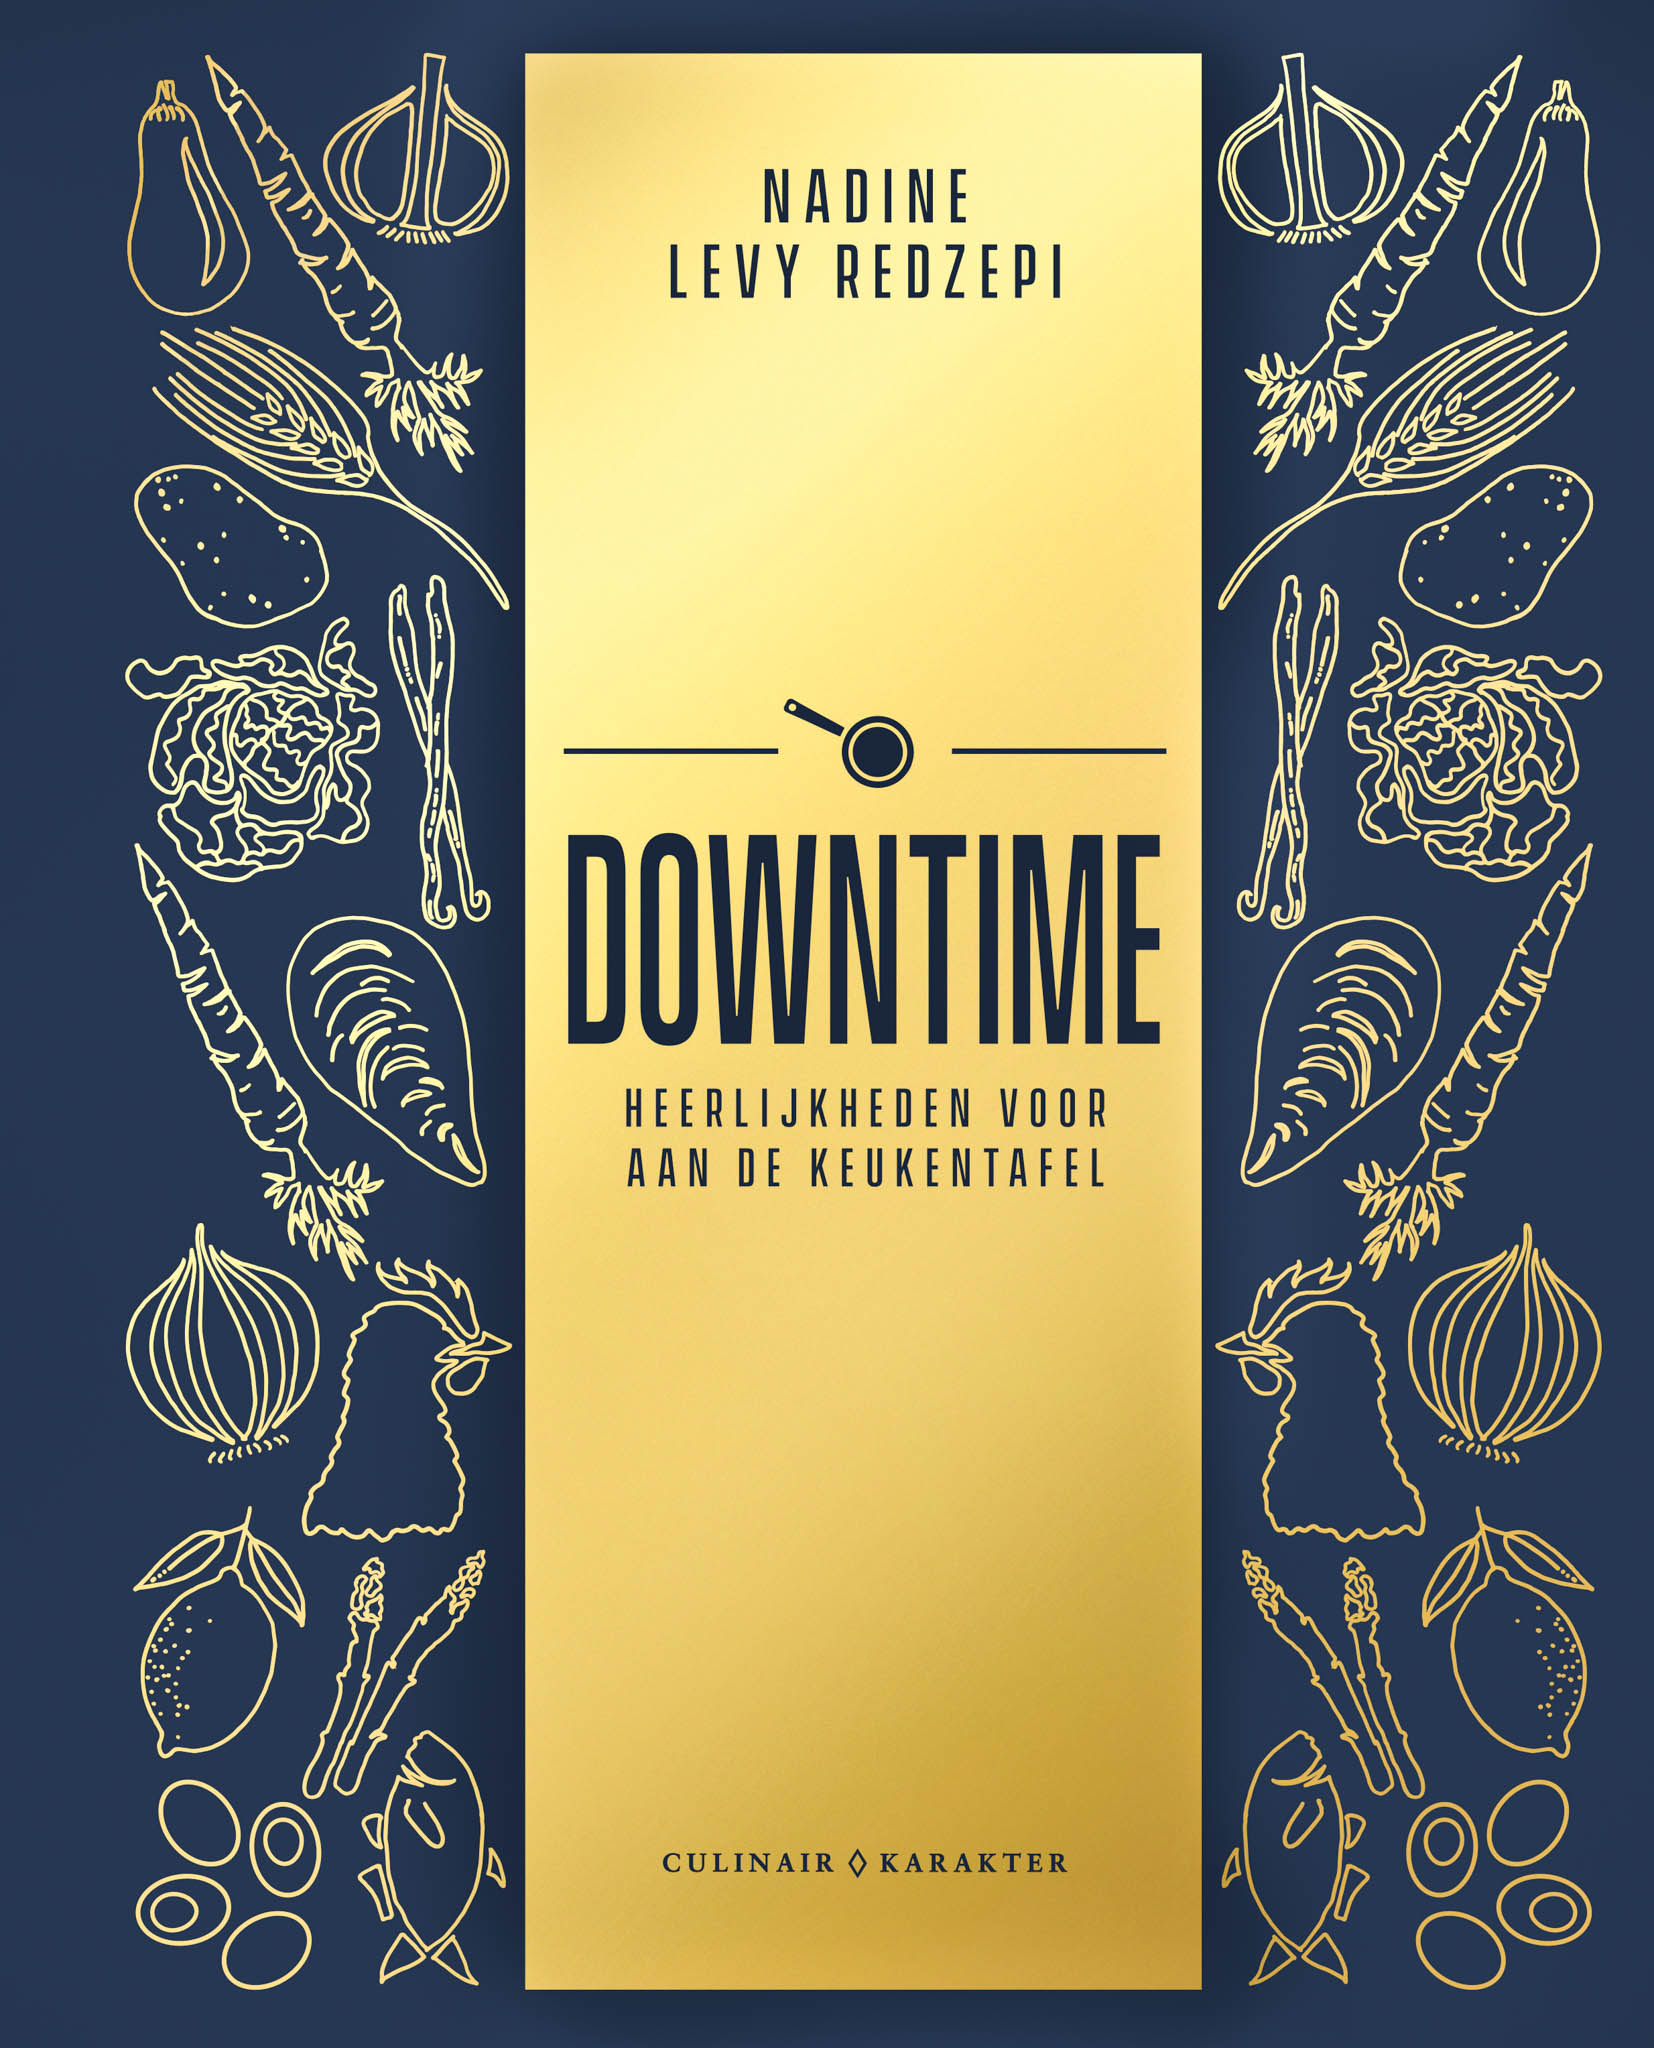 Downtime (cover) Nadine Redzepi